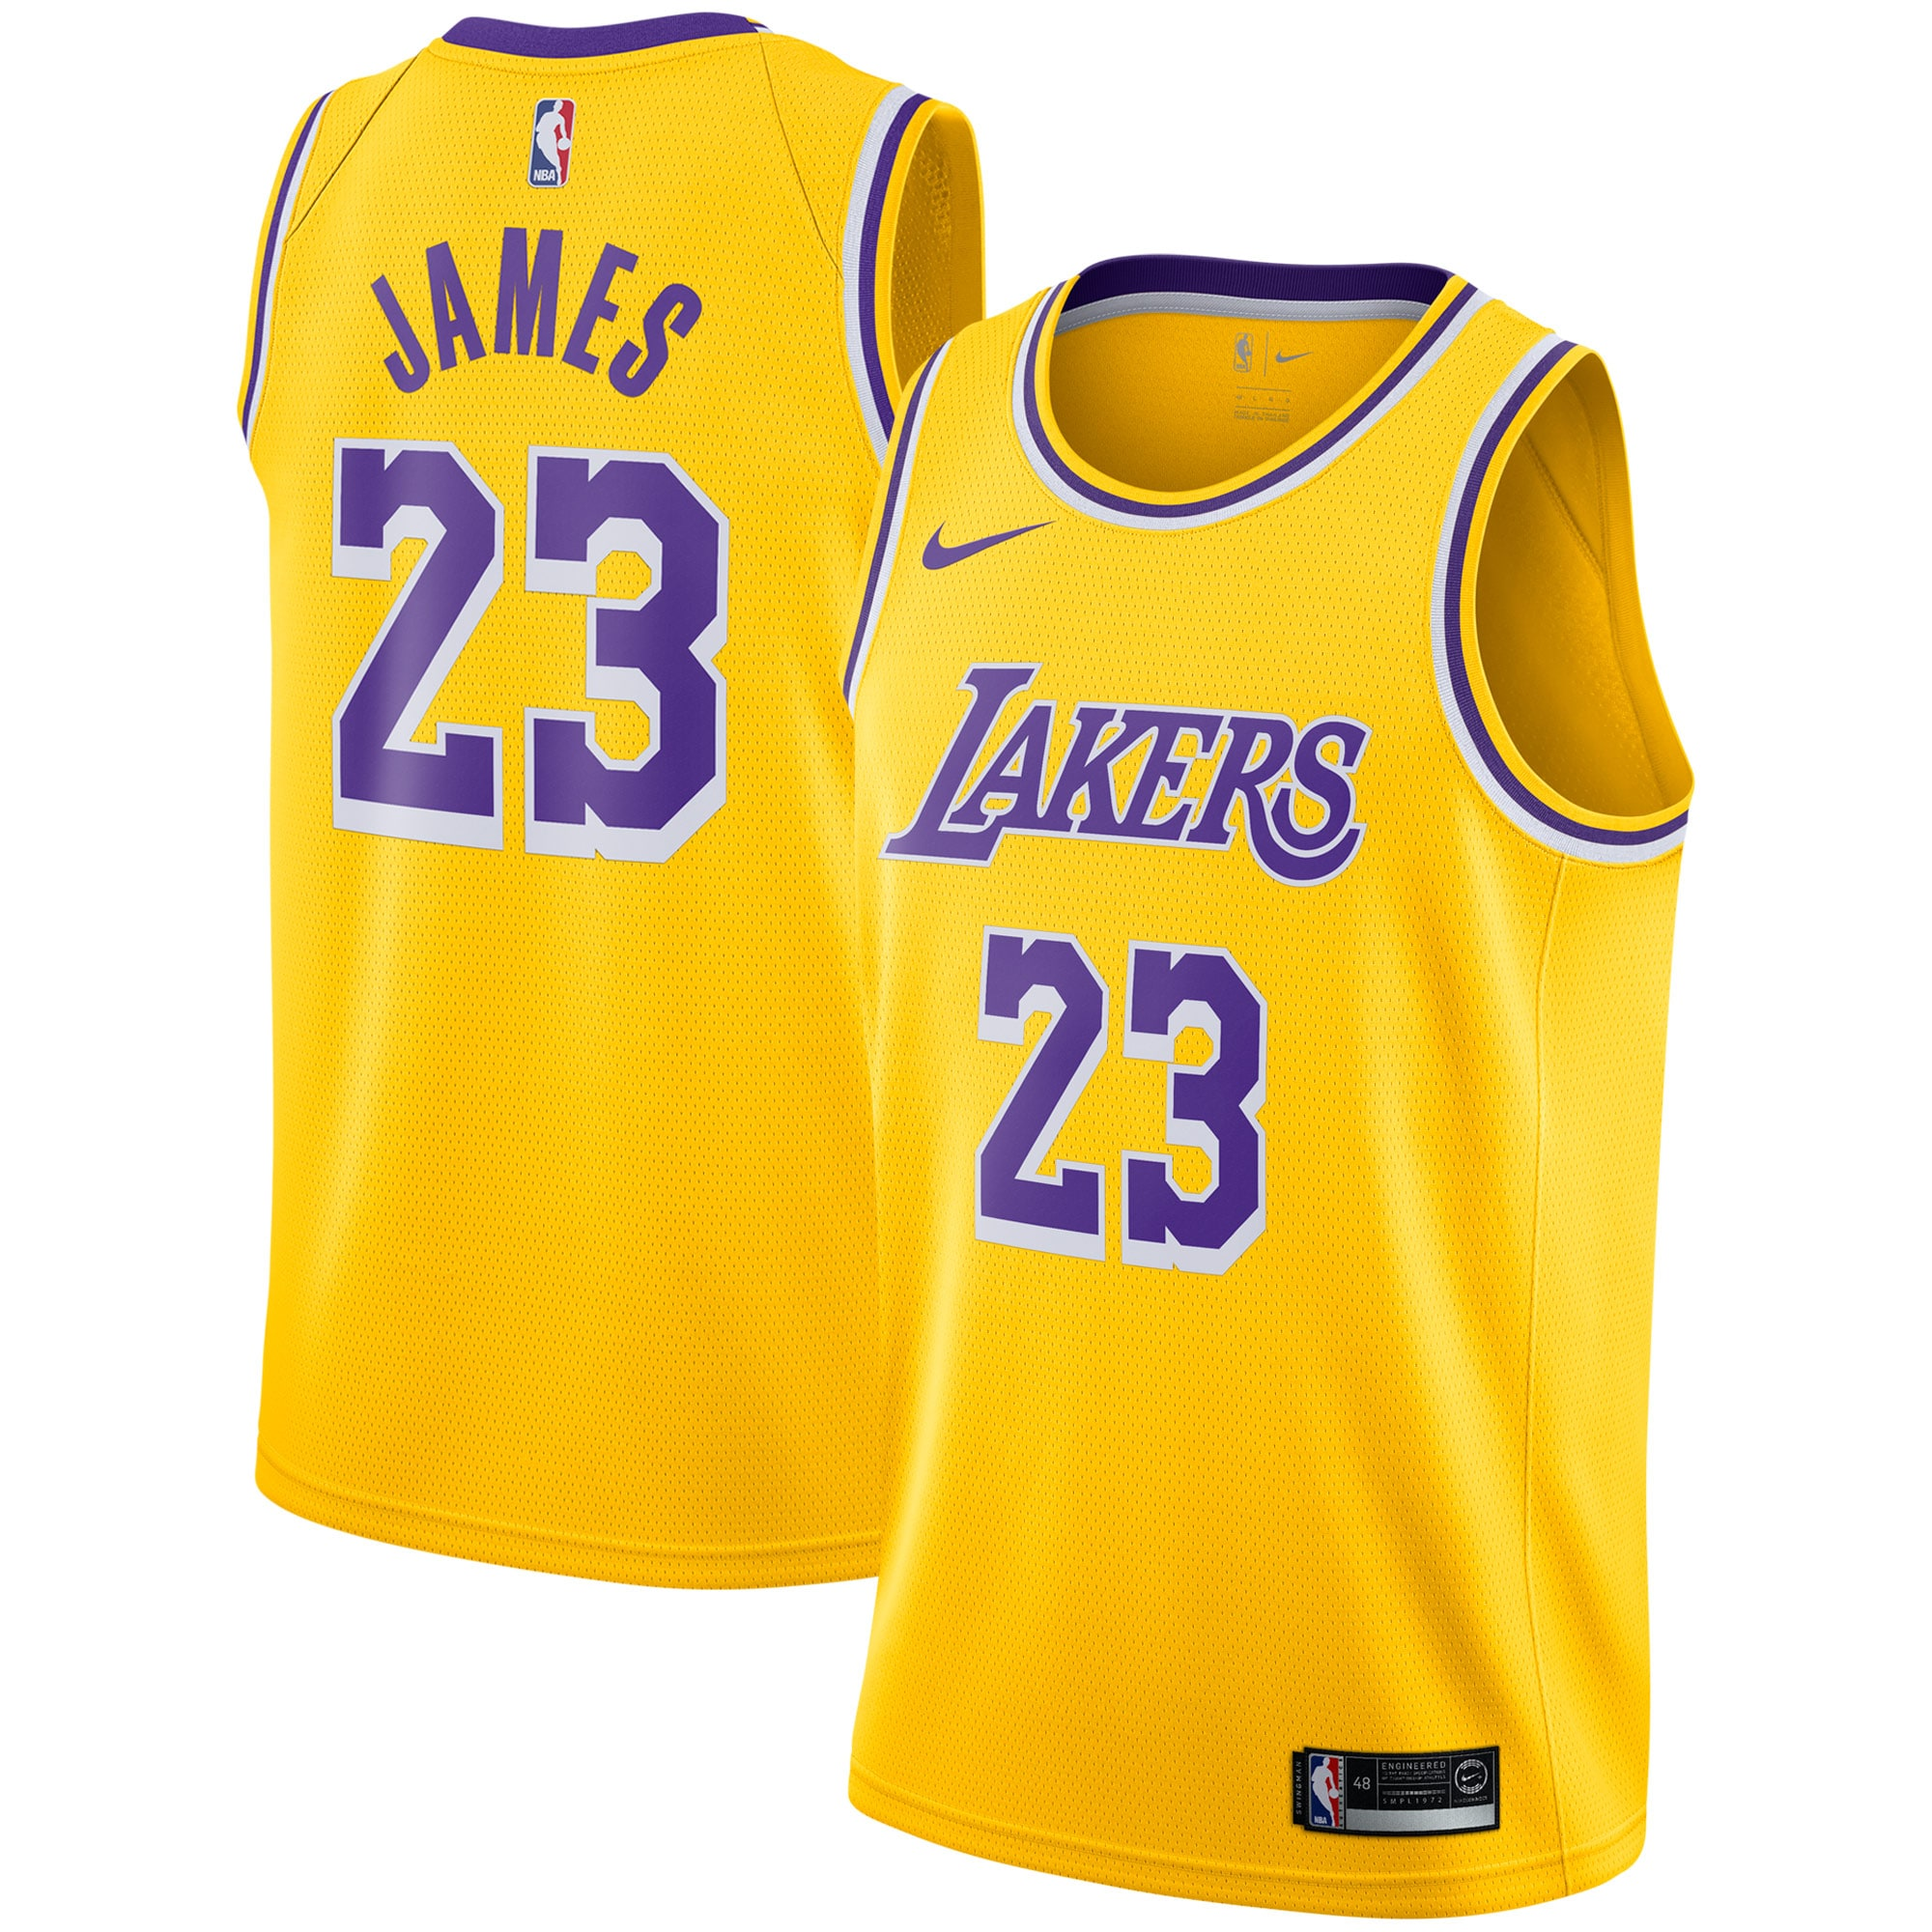 Los Angeles #23 Jersey,Basketball For Men And Unisex Basket Suit T-shirt Stitched Letters and Numbers-2XL Classic Sleeveless Set ZQ Lakers Kobe Bryant #8#24 Jersey